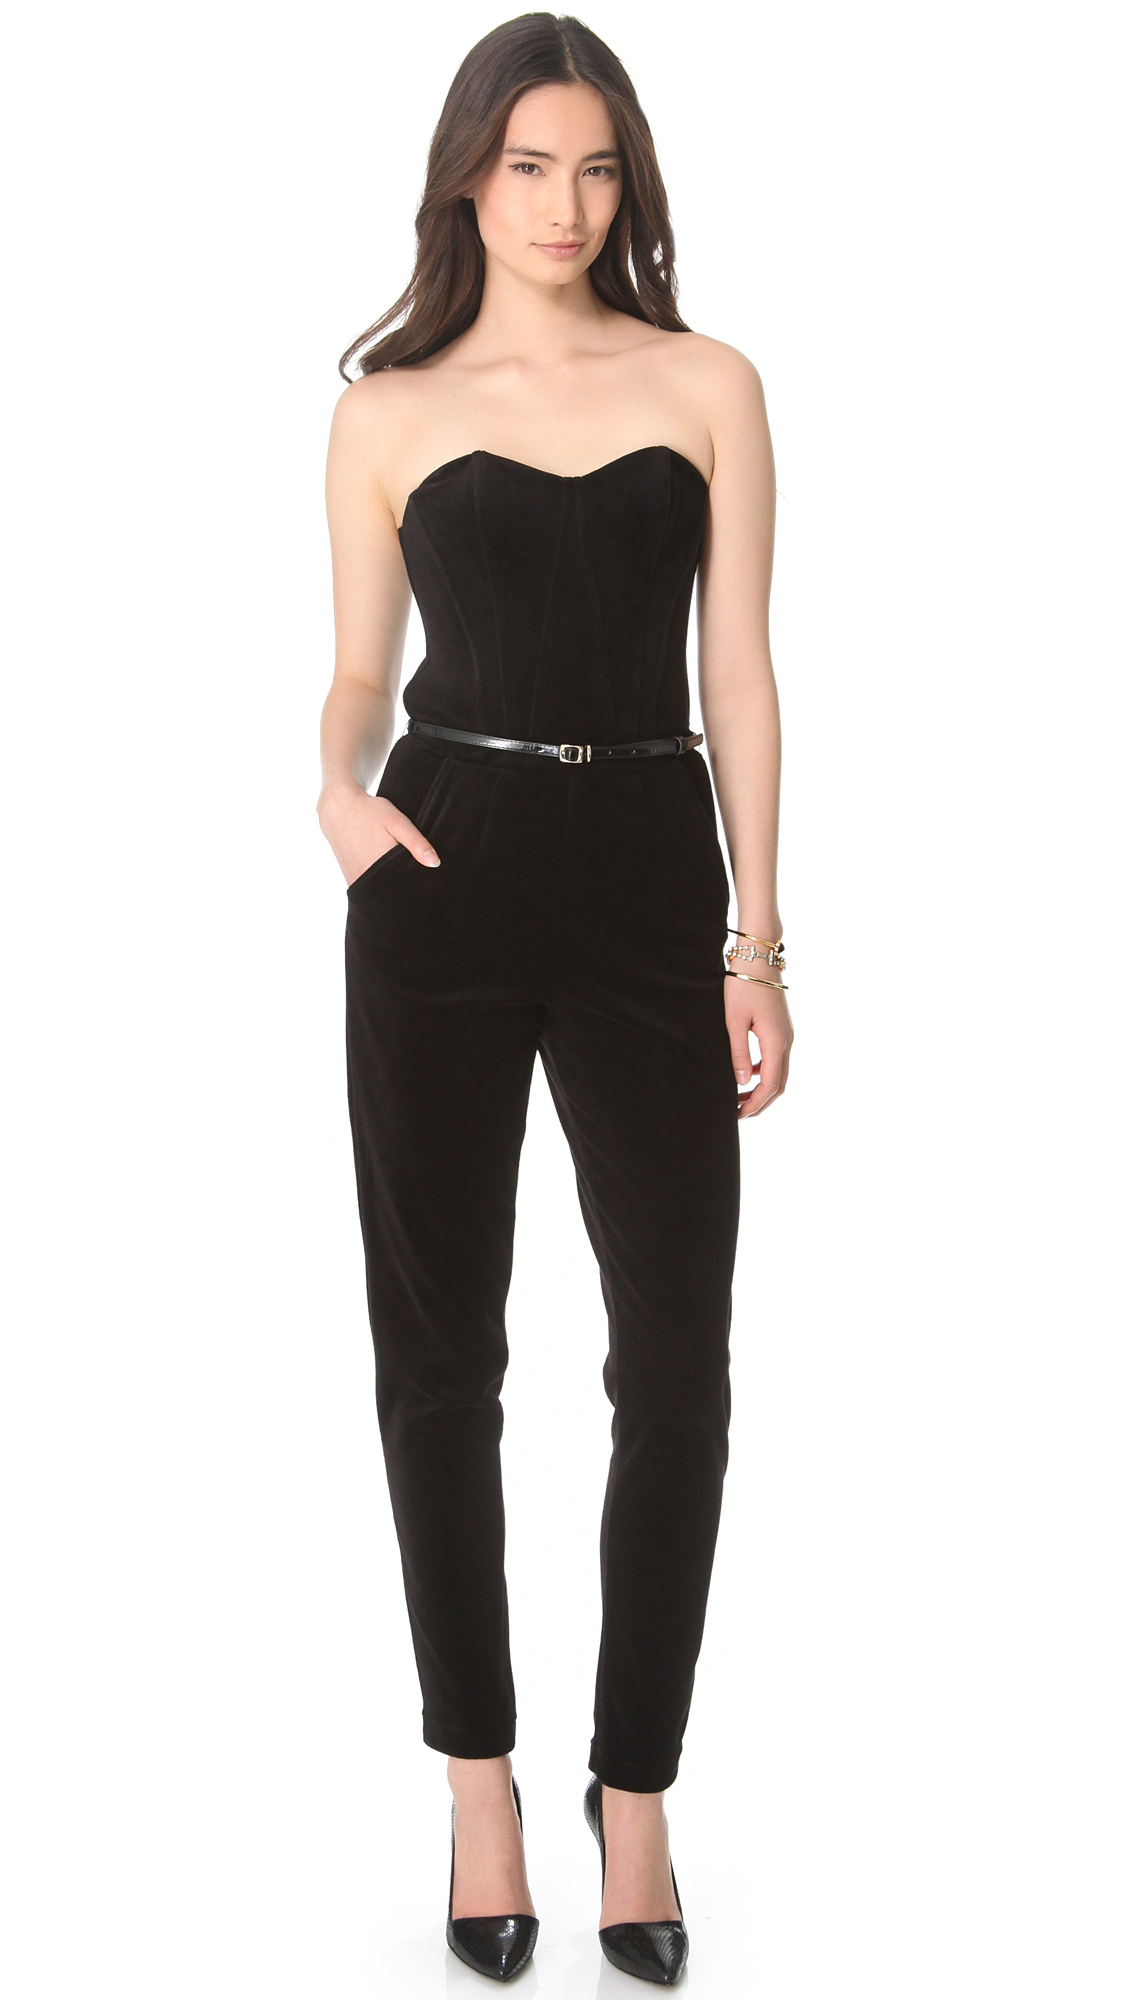 Velour Joggers | Velor Jumpsuit | Juicy Couture Jogging Suits